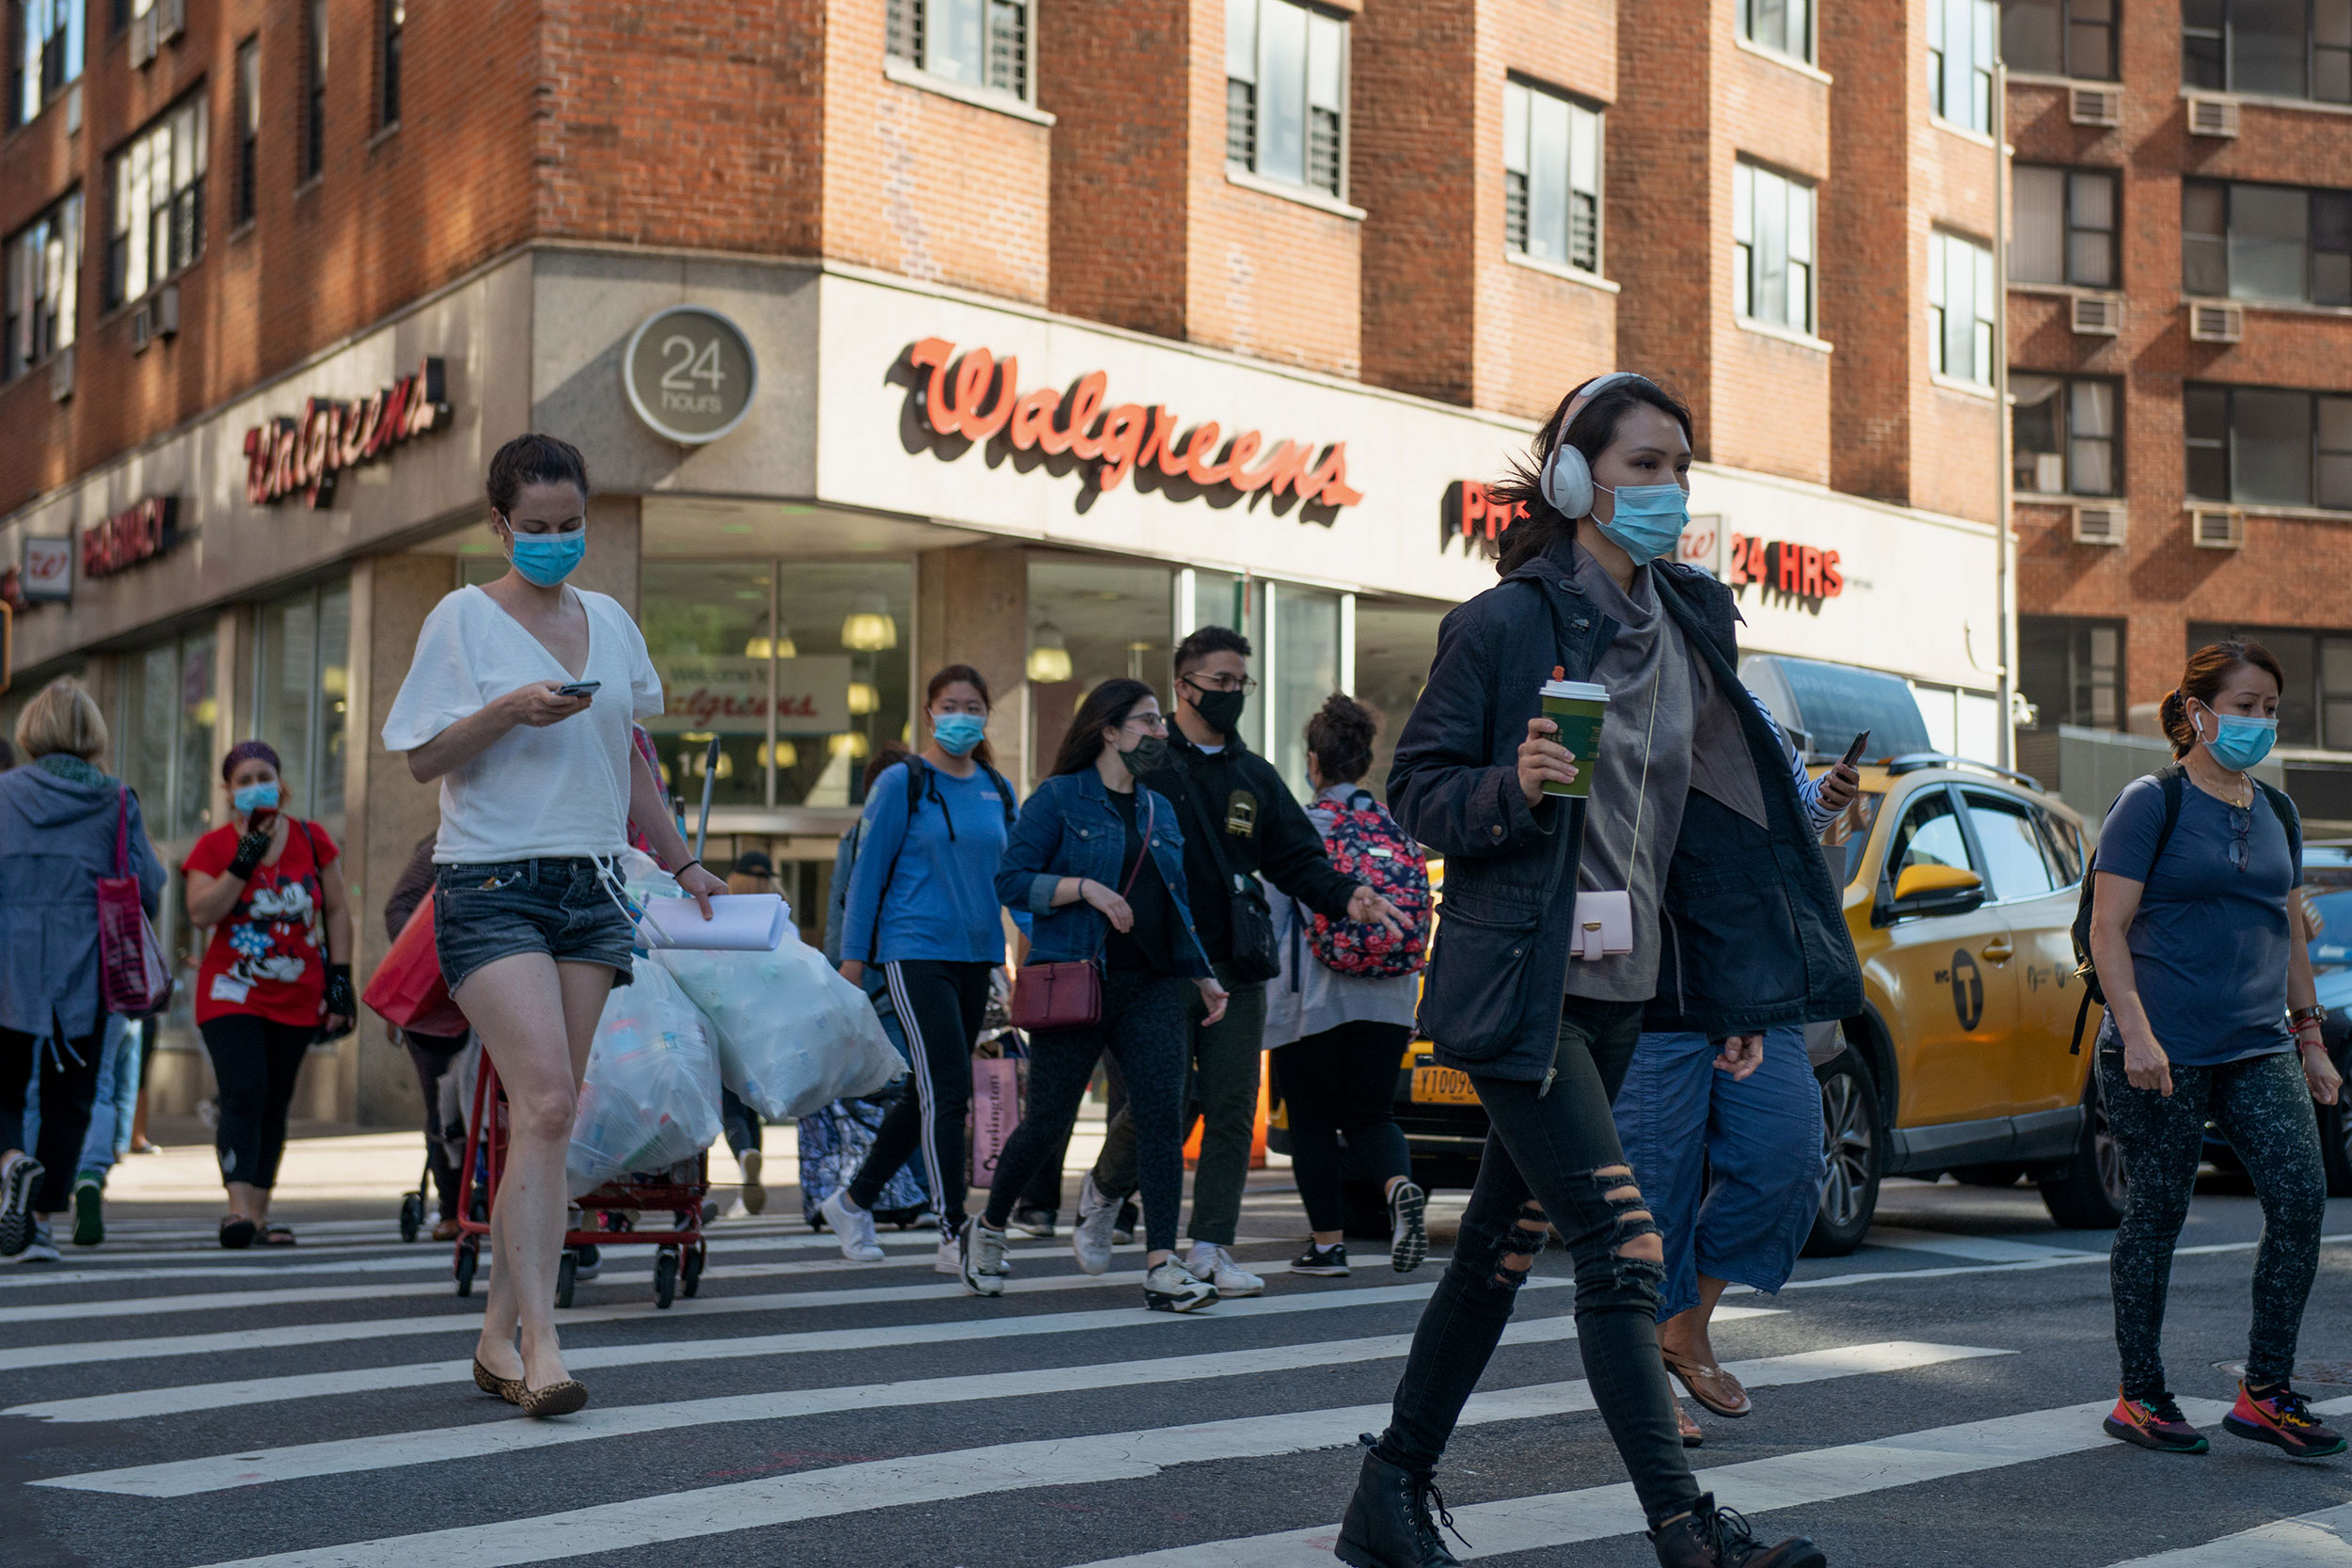 People cross the street near a Walgreens store on September 30 in New York City.